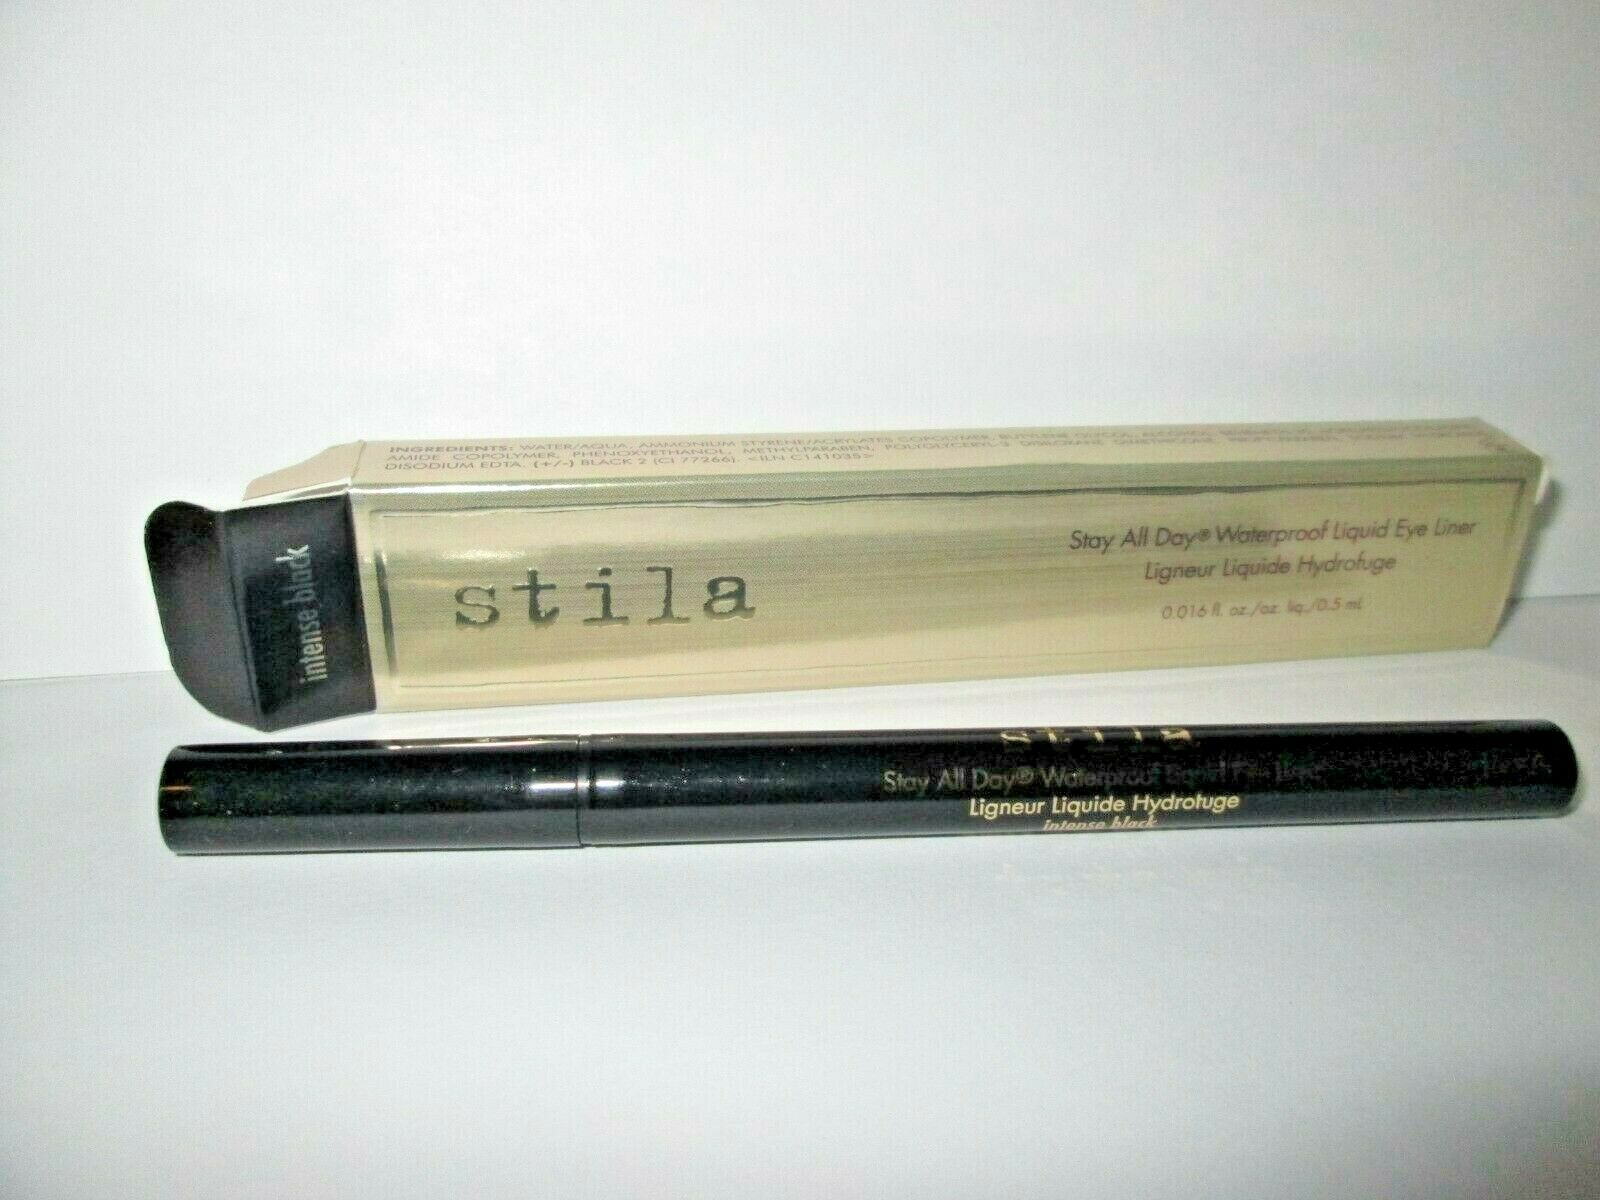 Stila Stay All Day Waterproof Liquid Eye Liner, Intense Blac